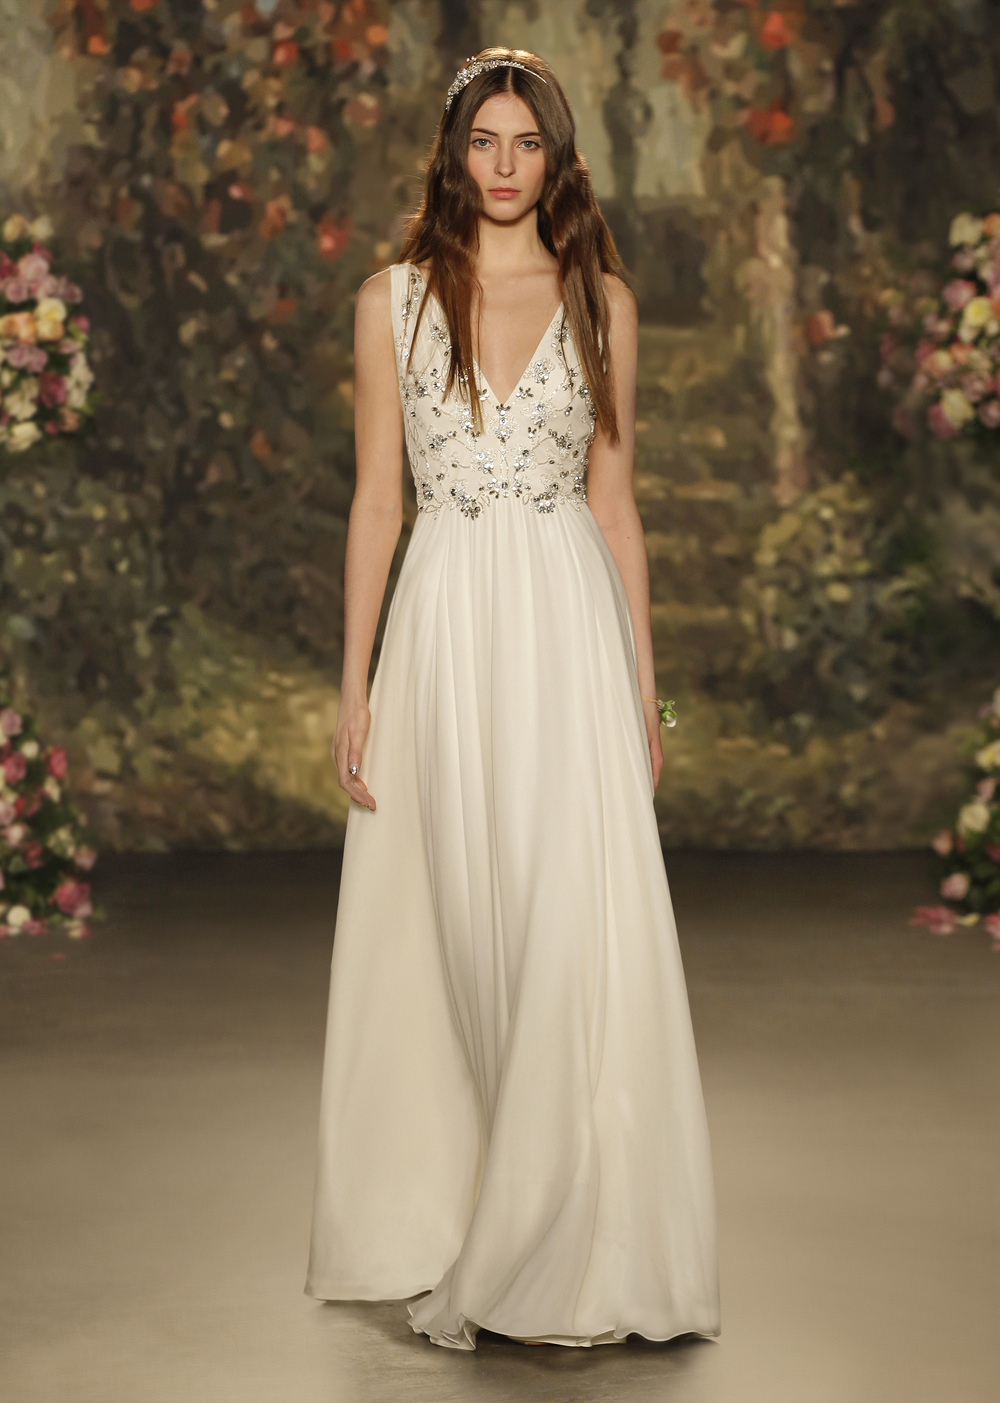 Jenny Packham wedding gown at Little White Dress Bridal Shop in Denver, Colorado